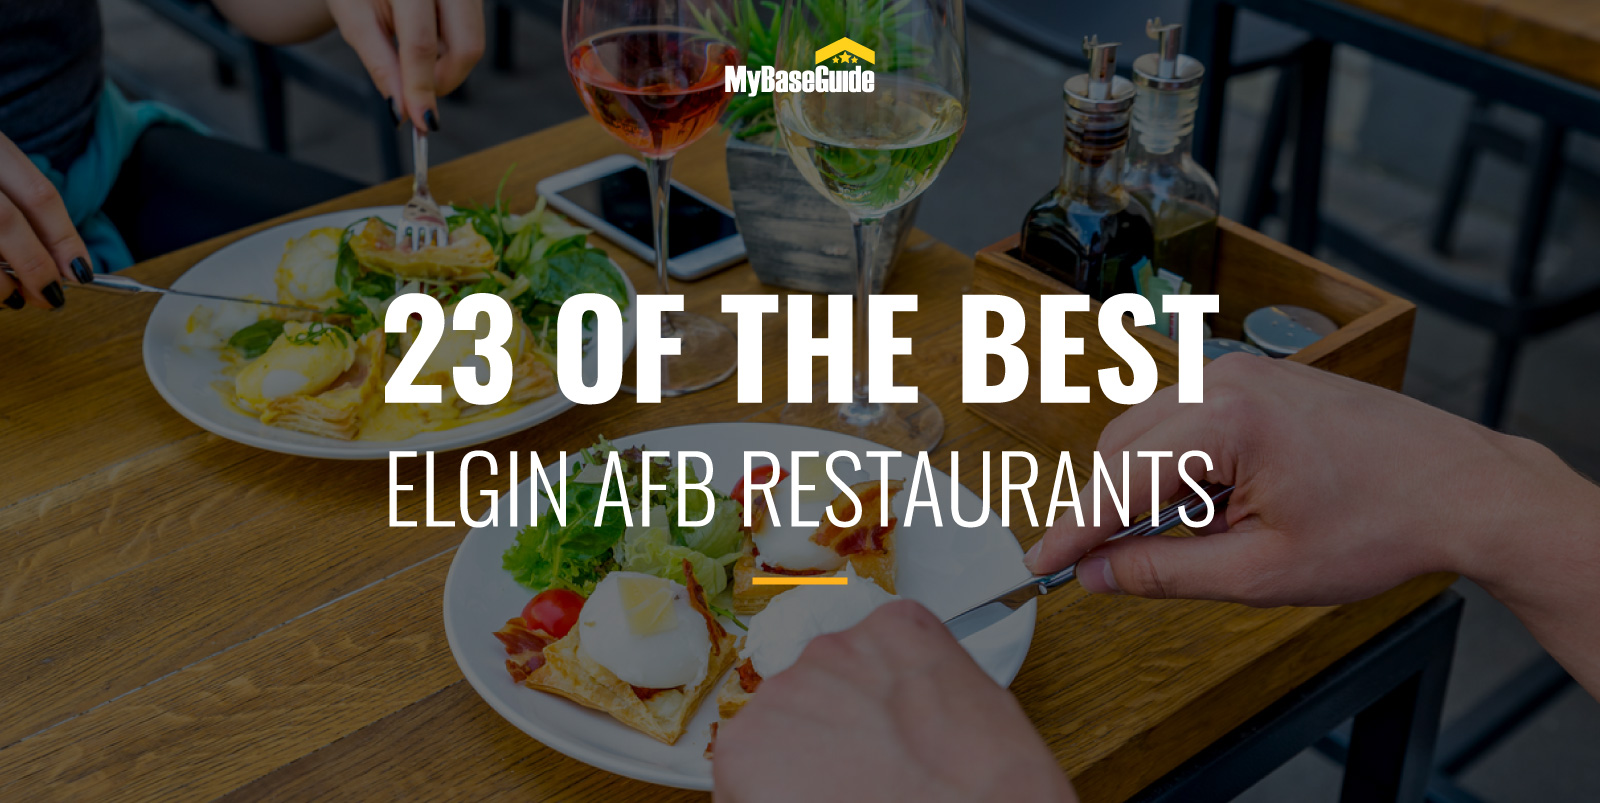 23 of the Best Eglin AFB Restaurants